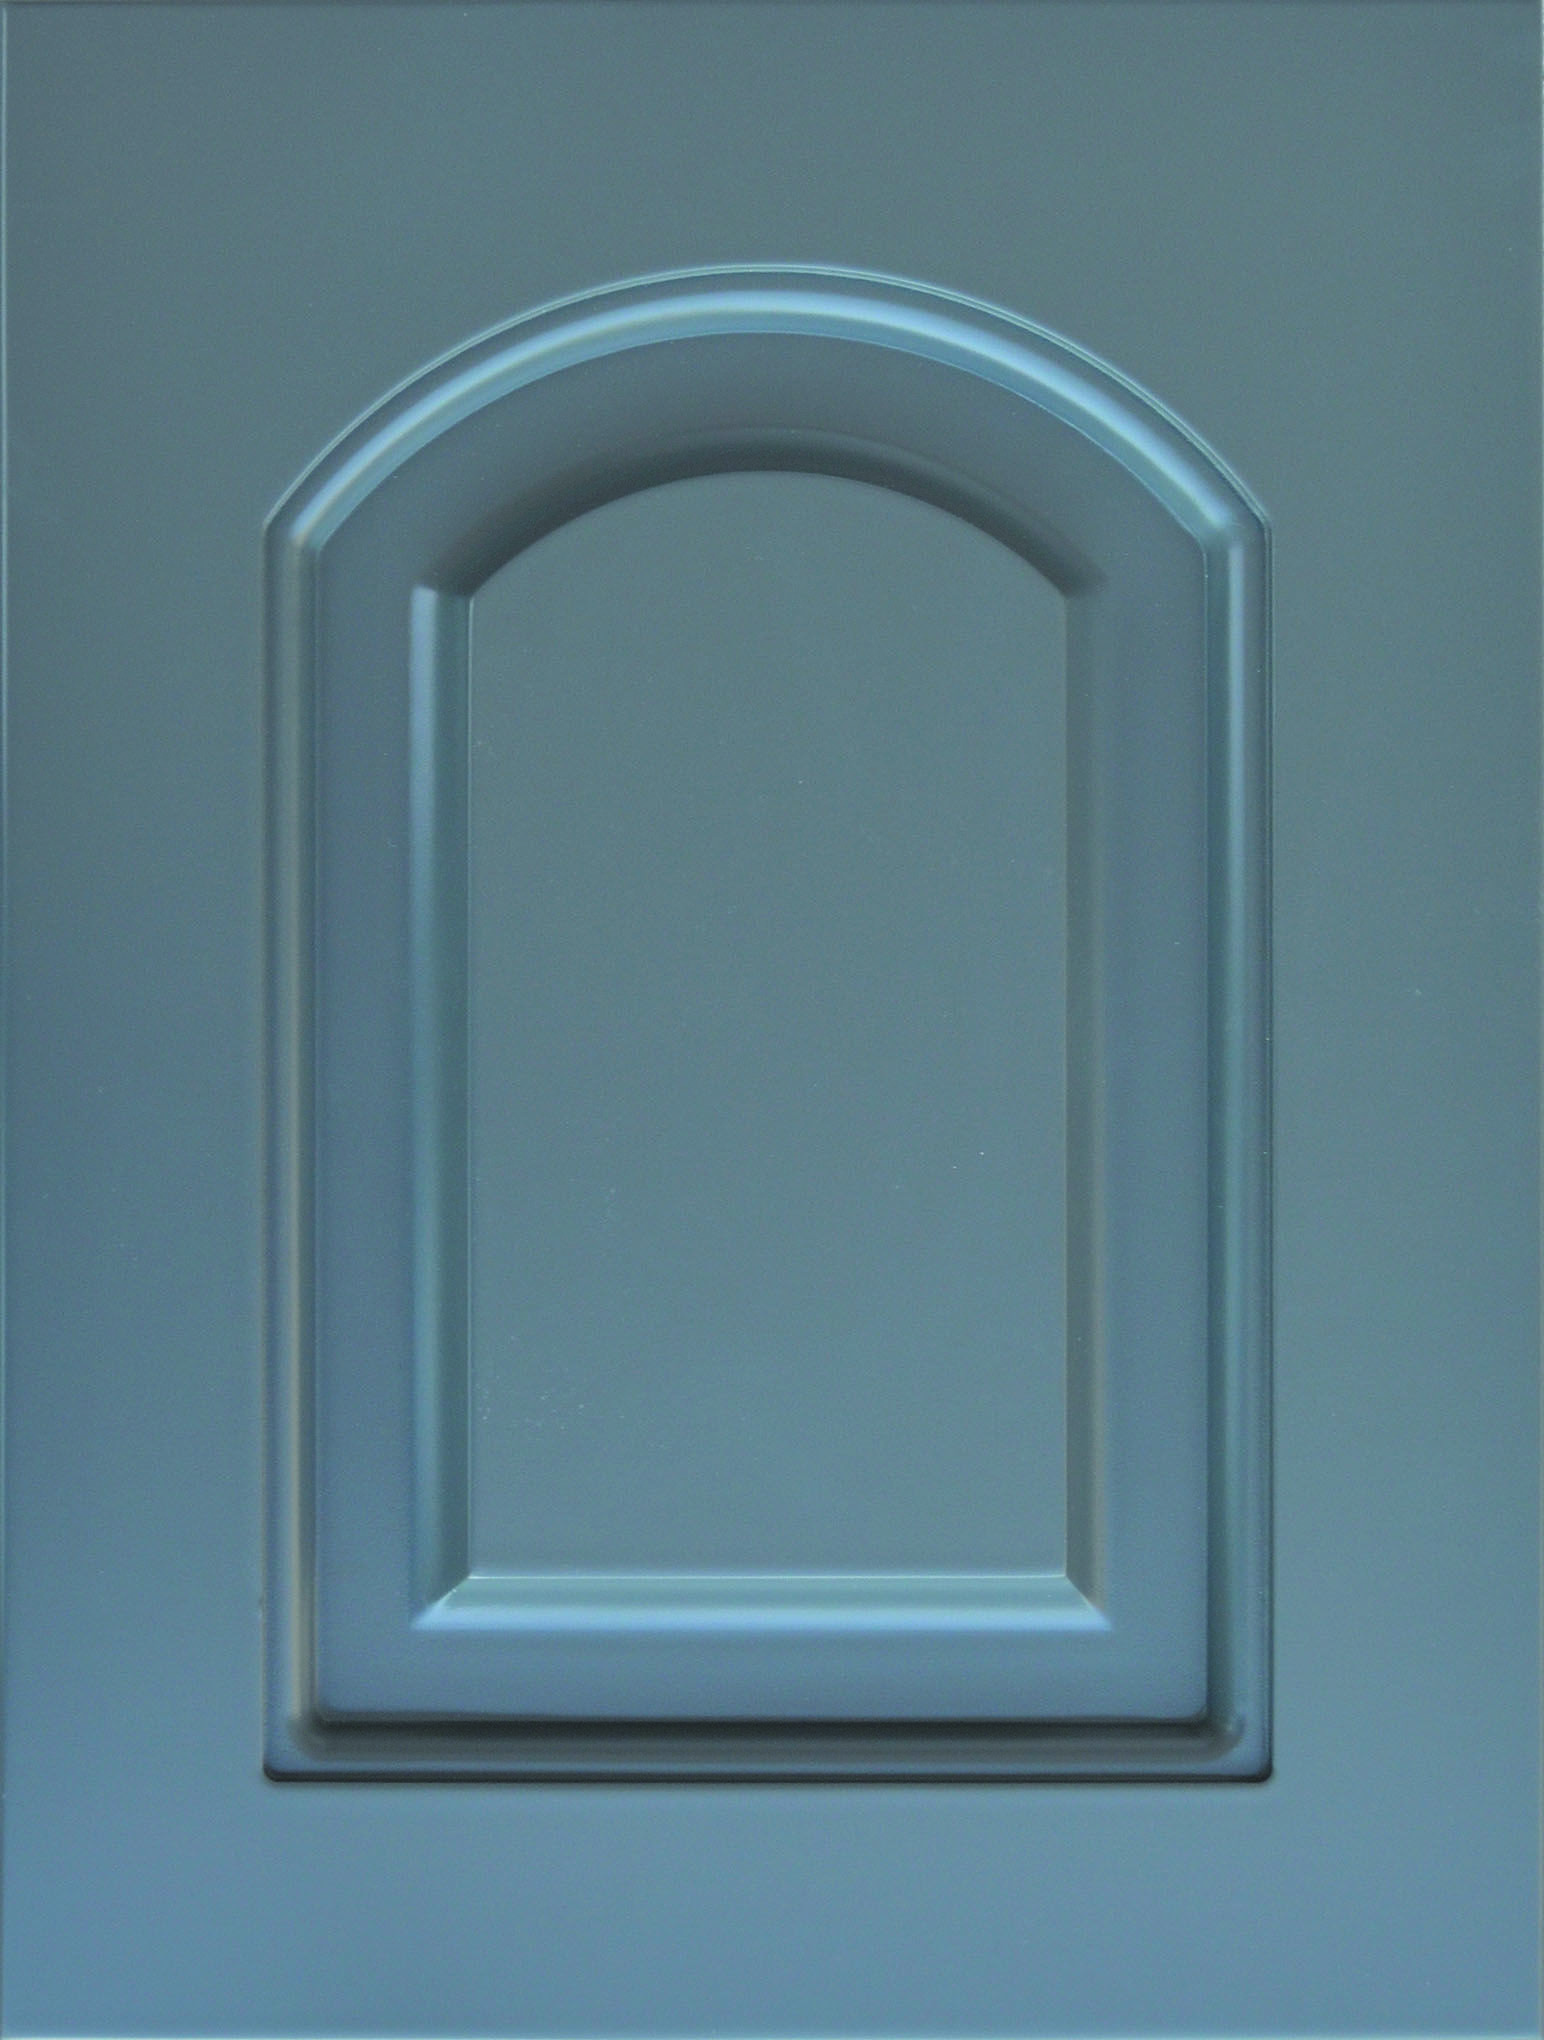 Belmore Raised Panel Door Available Material: MDF Color Shown ...